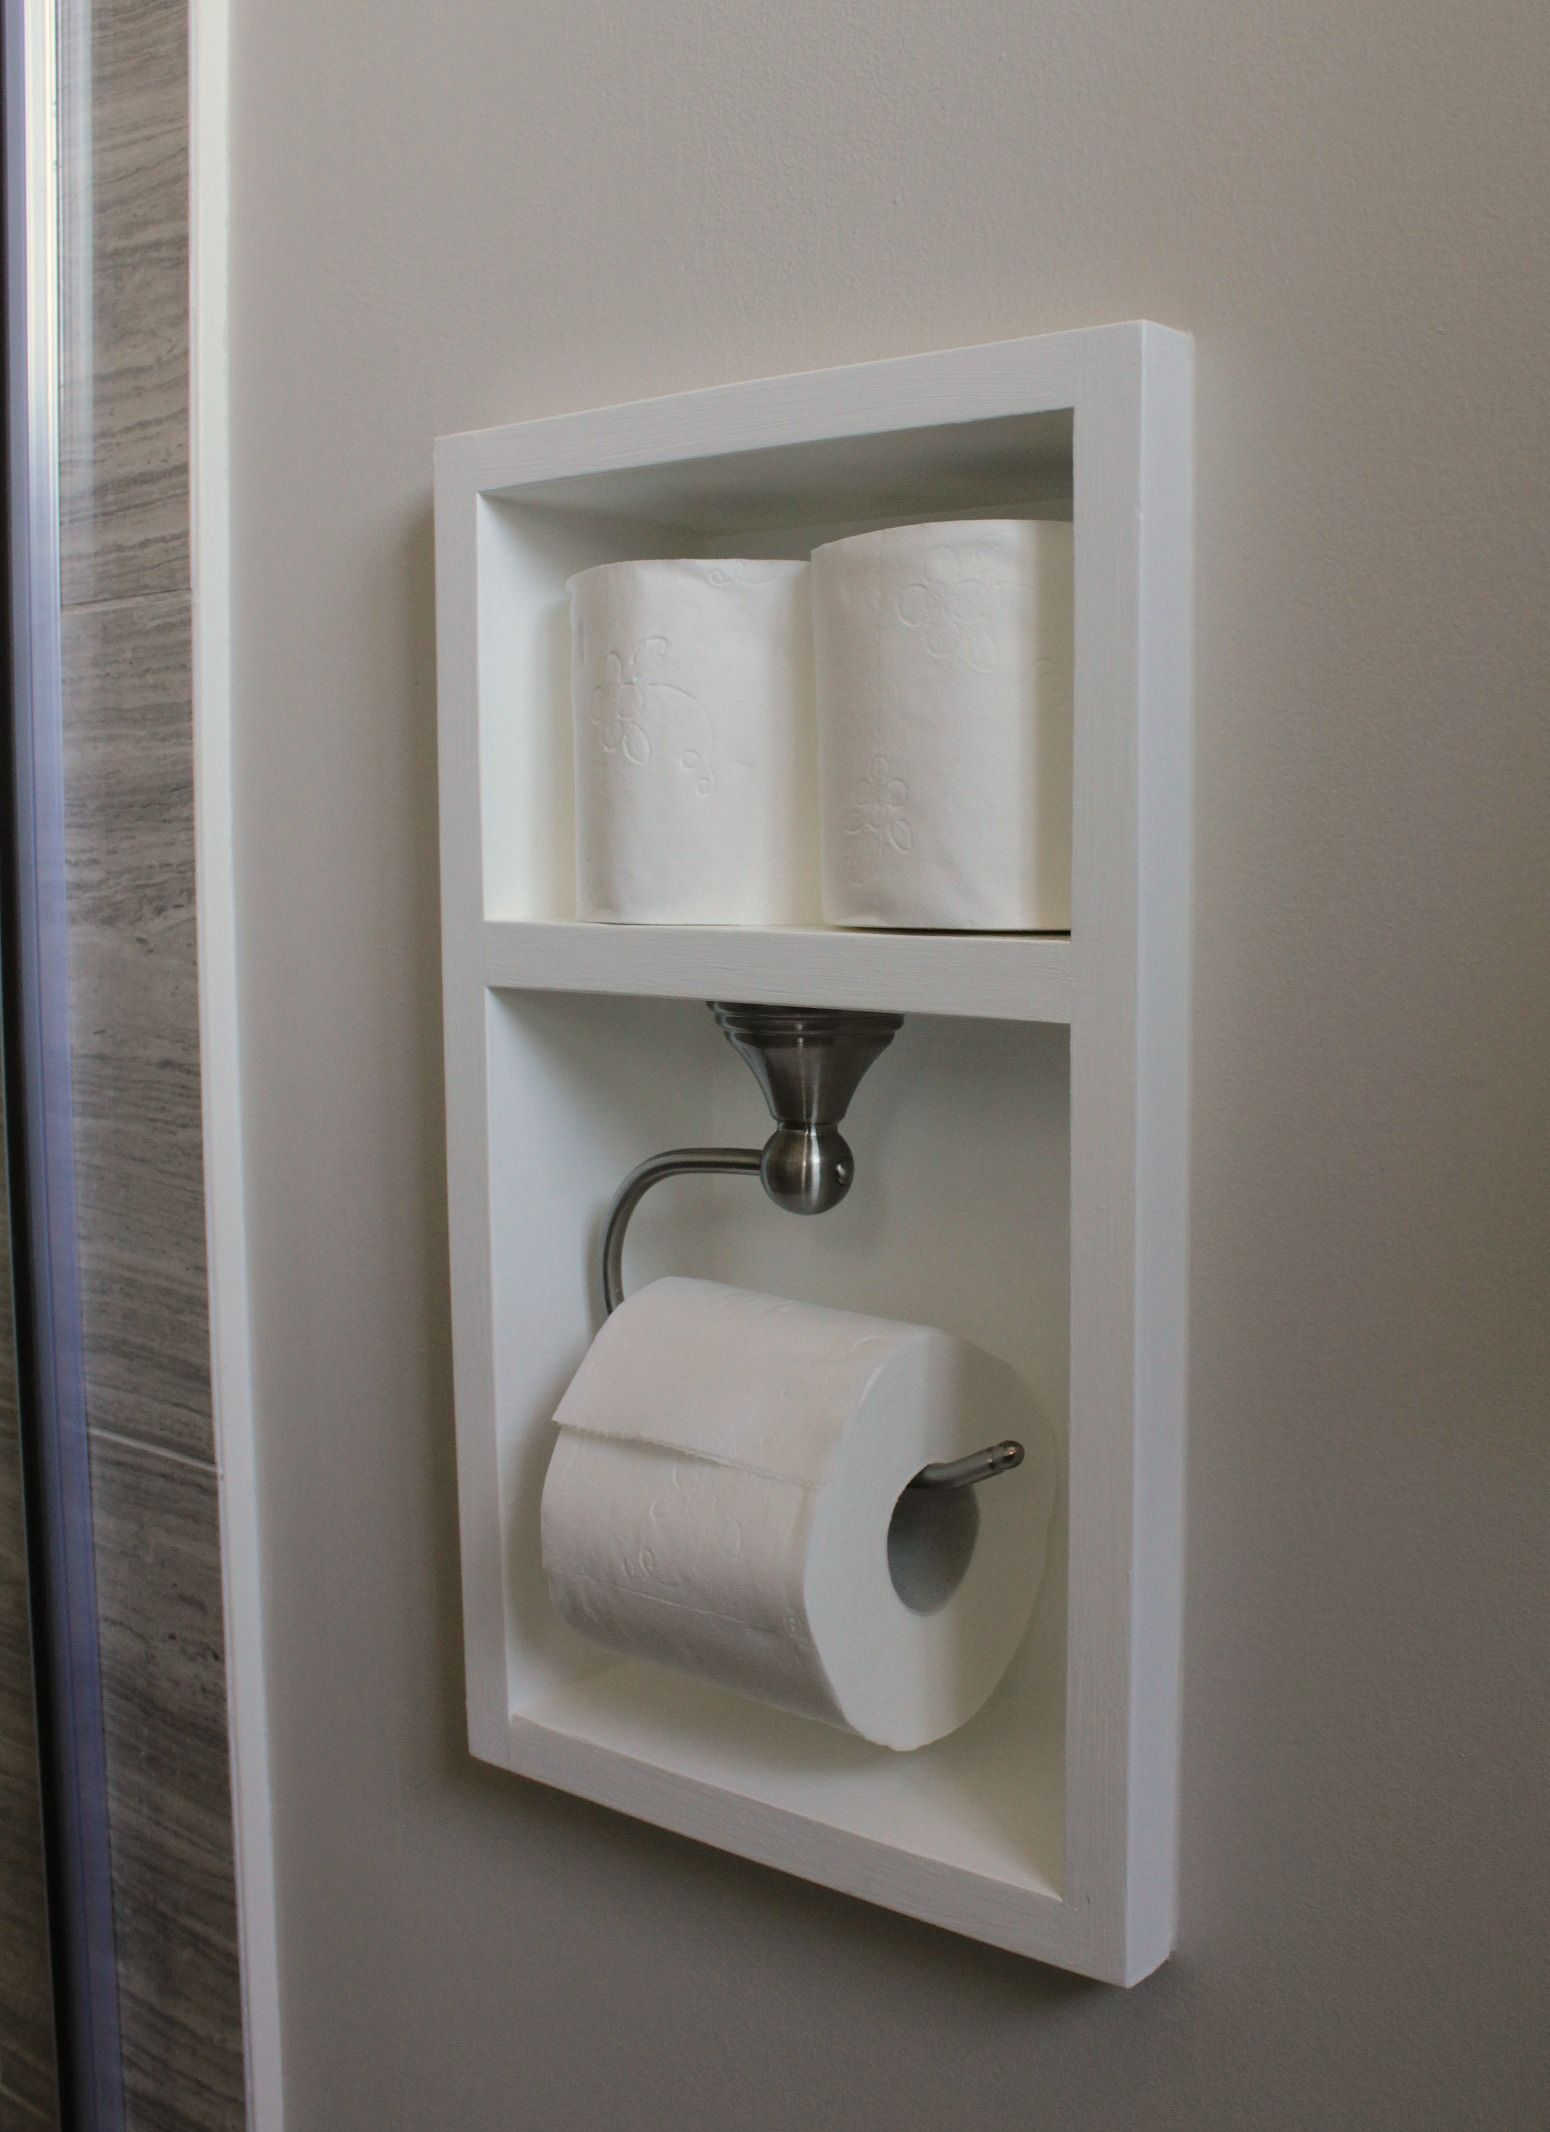 10 Best Recessed Toilet Paper Holder Ideas Recessed Toilet Paper Holder Toilet Paper Toilet Paper Holder